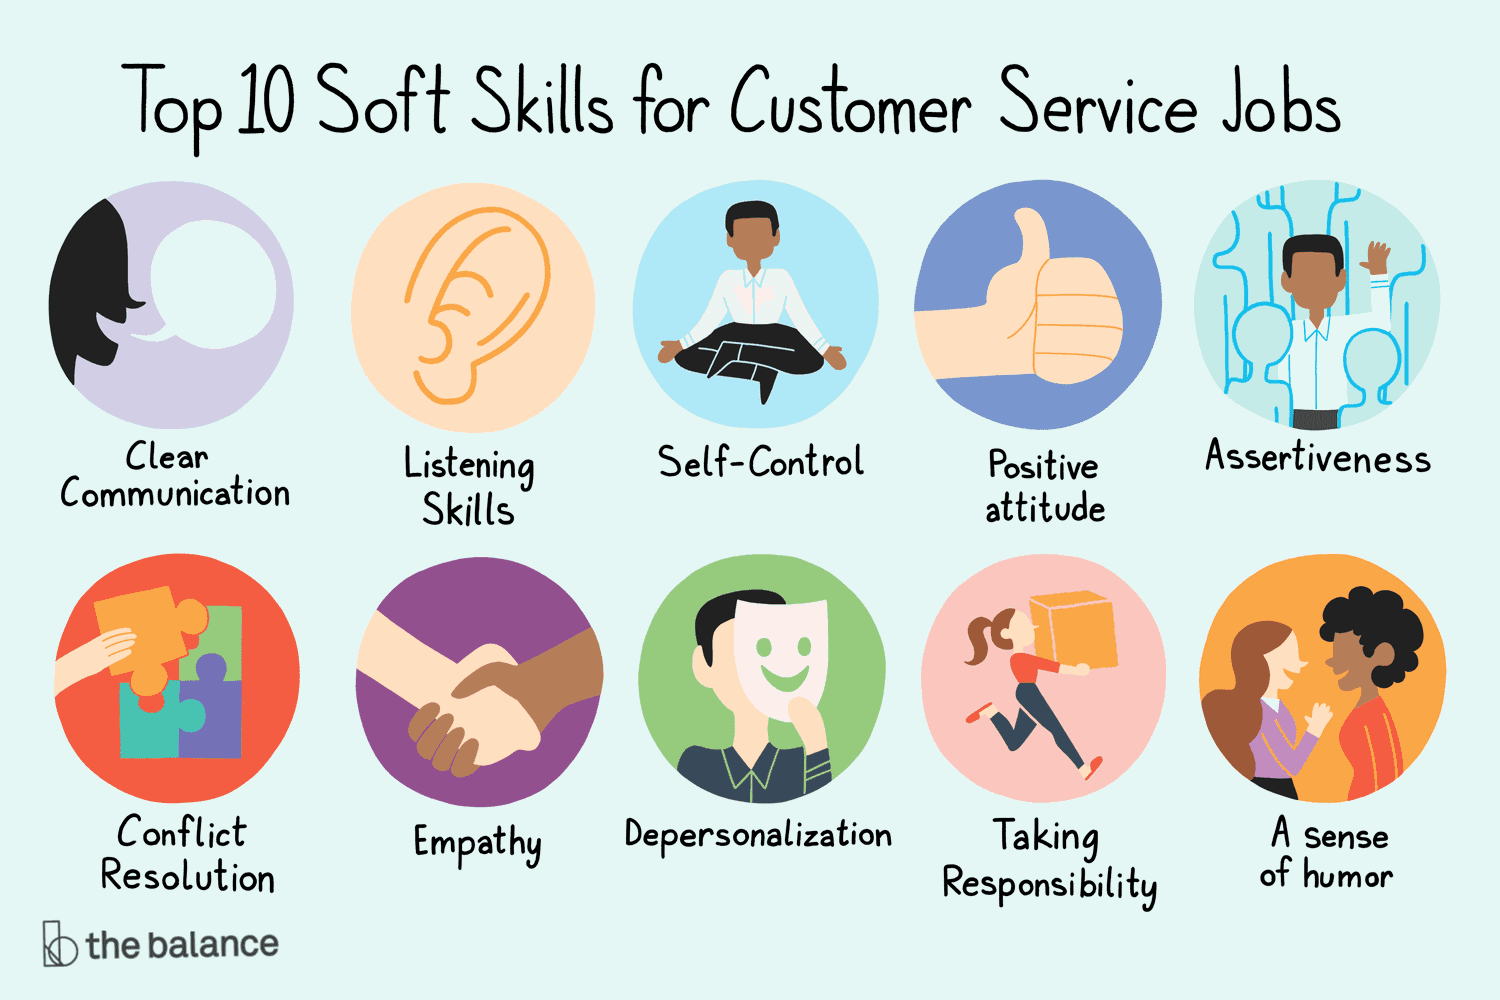 Top 10 Soft Skills For Customer Service Jobs